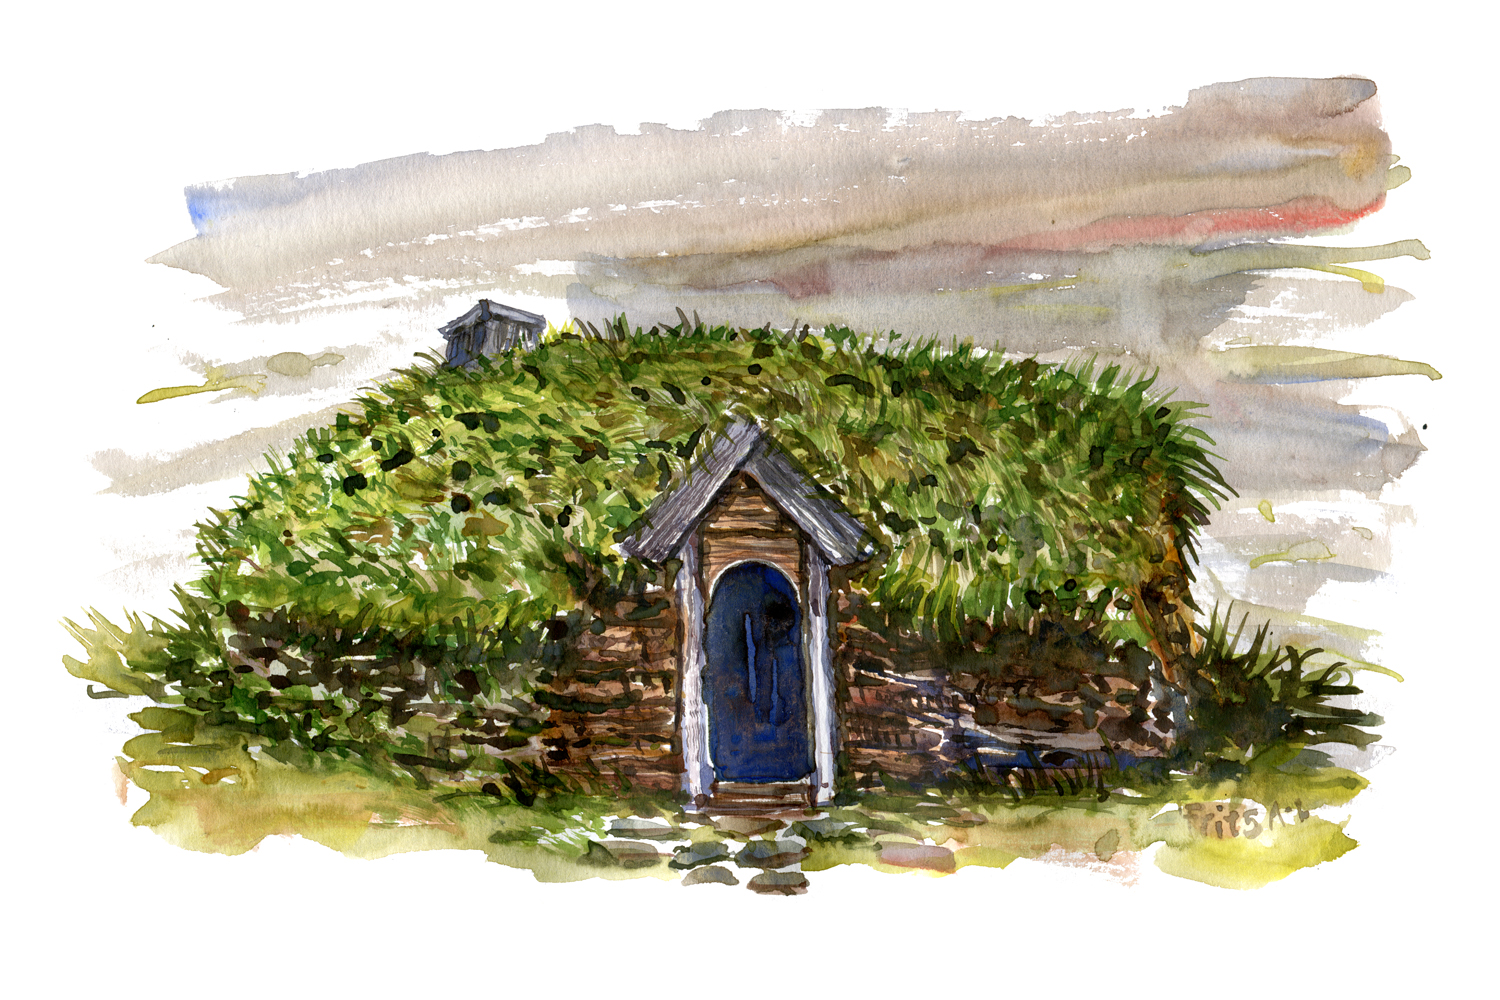 Viking house inspiration sketch for shelter – Frits Ahlefeldt